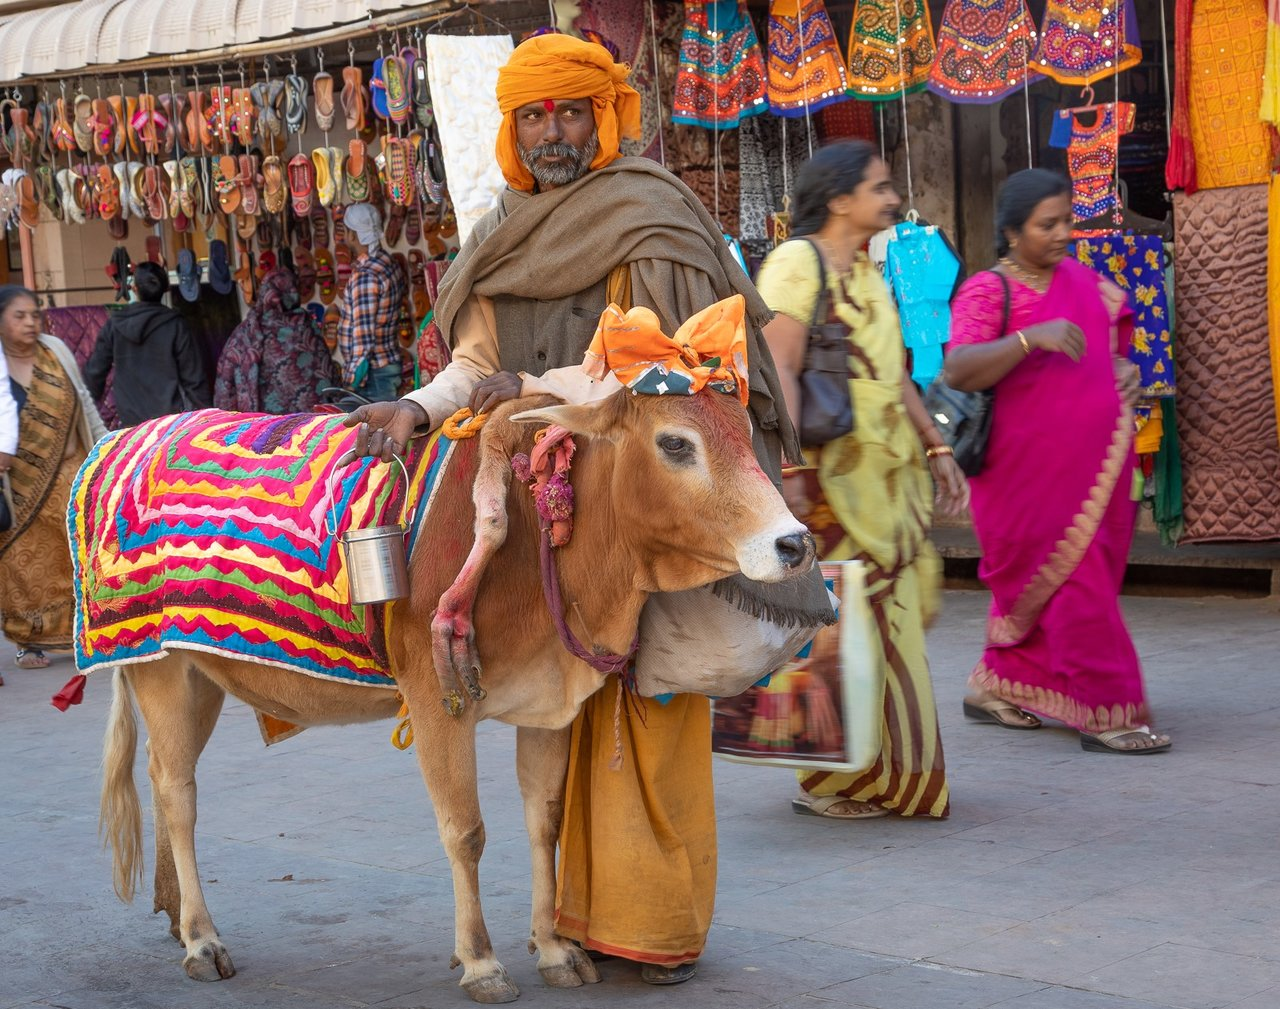 A holy man with a 5 legged sacred cow in the holy city of Pushkar. This genetic anomaly of birth makes this cow even more sacred and the sadhu profits from it.  | Photo taken by Jean M